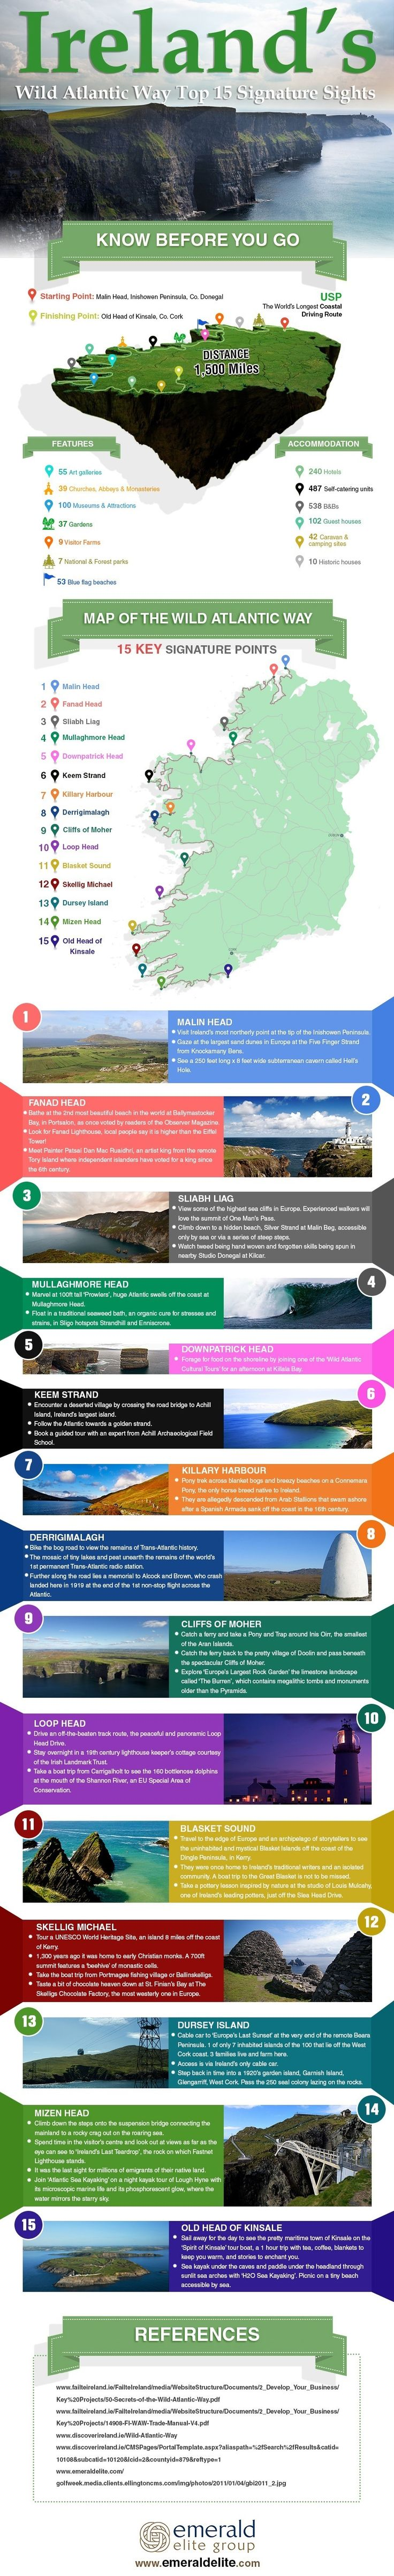 Really cool infographic guide to Ireland's Wild Atlantic Way.